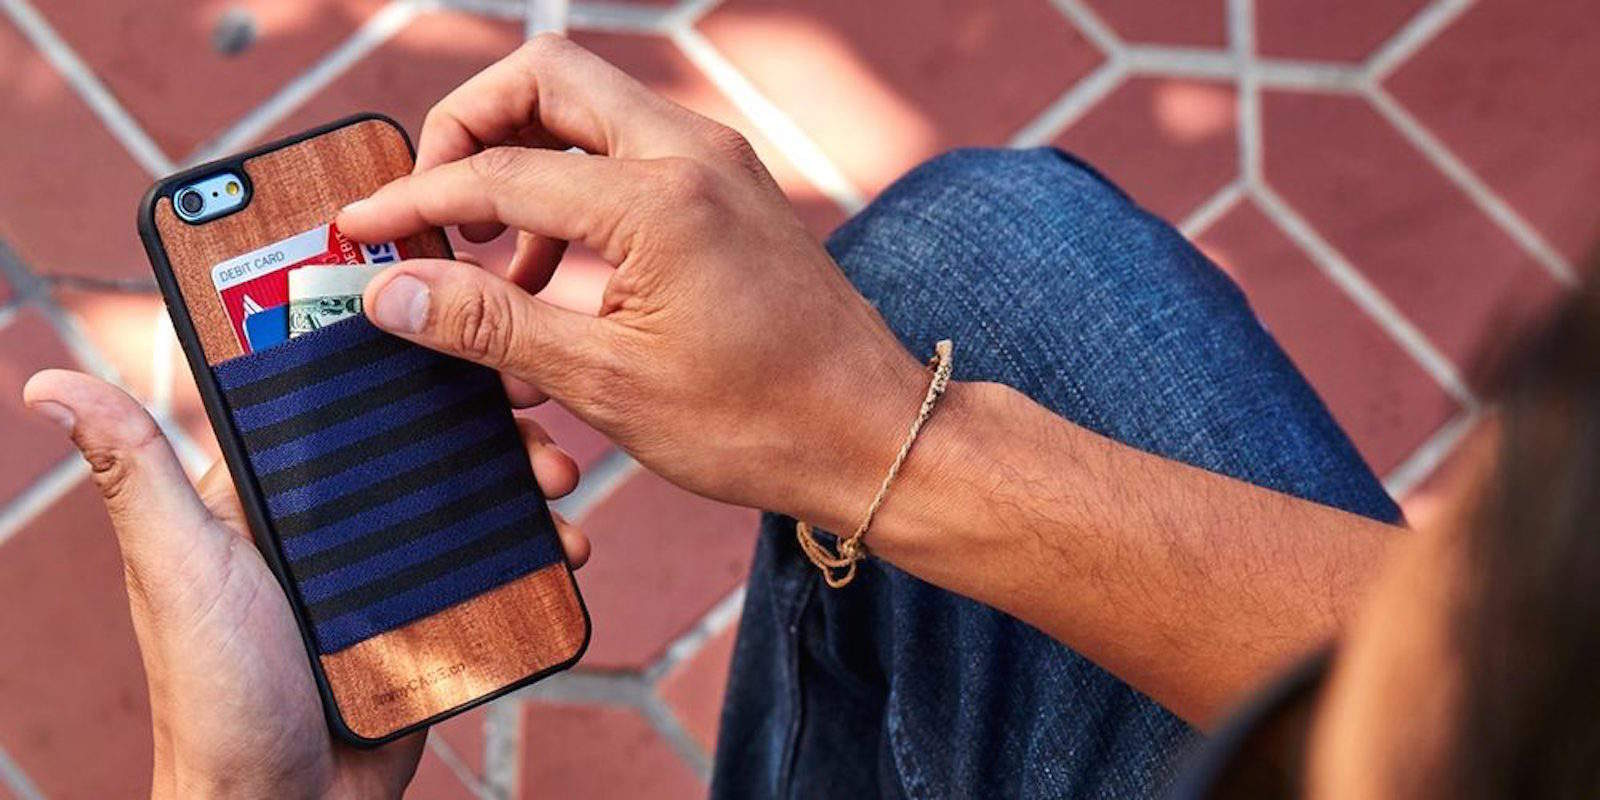 Combine your wallet and phone with this classy case that also carries your cards.